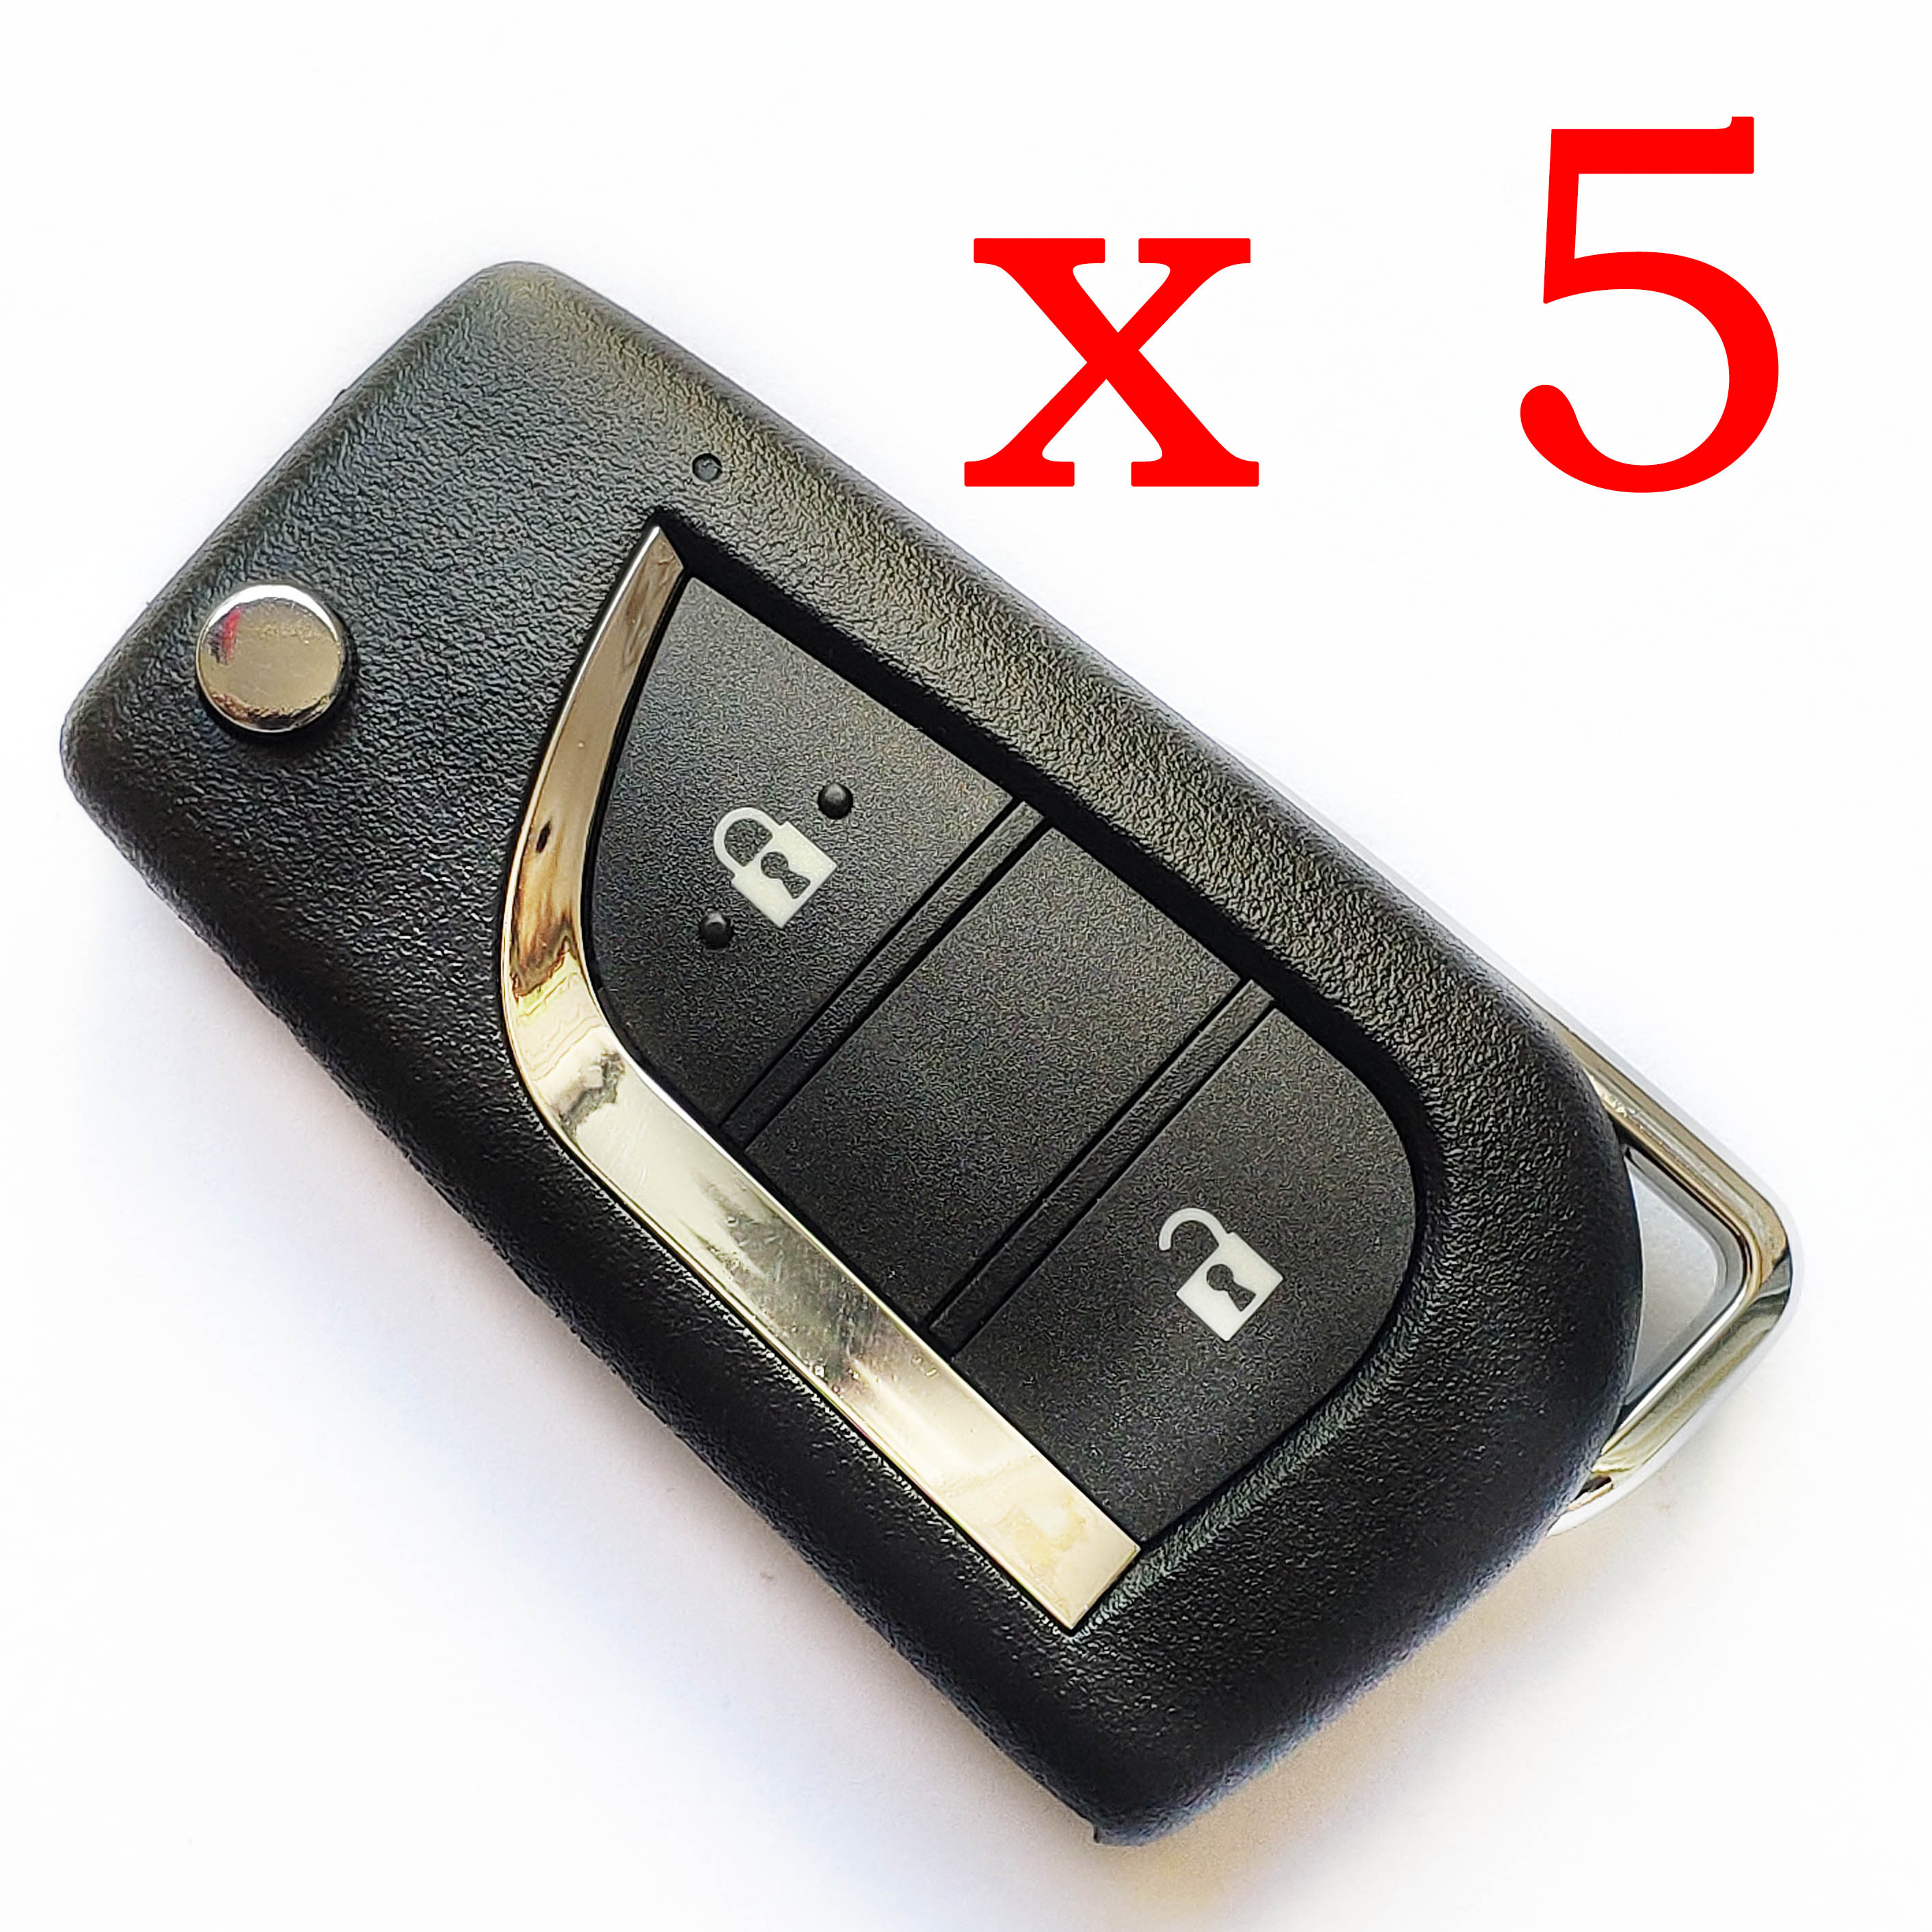 5 pieces Xhorse VVDI 2 Buttons Toyota Type Universal Remote Control